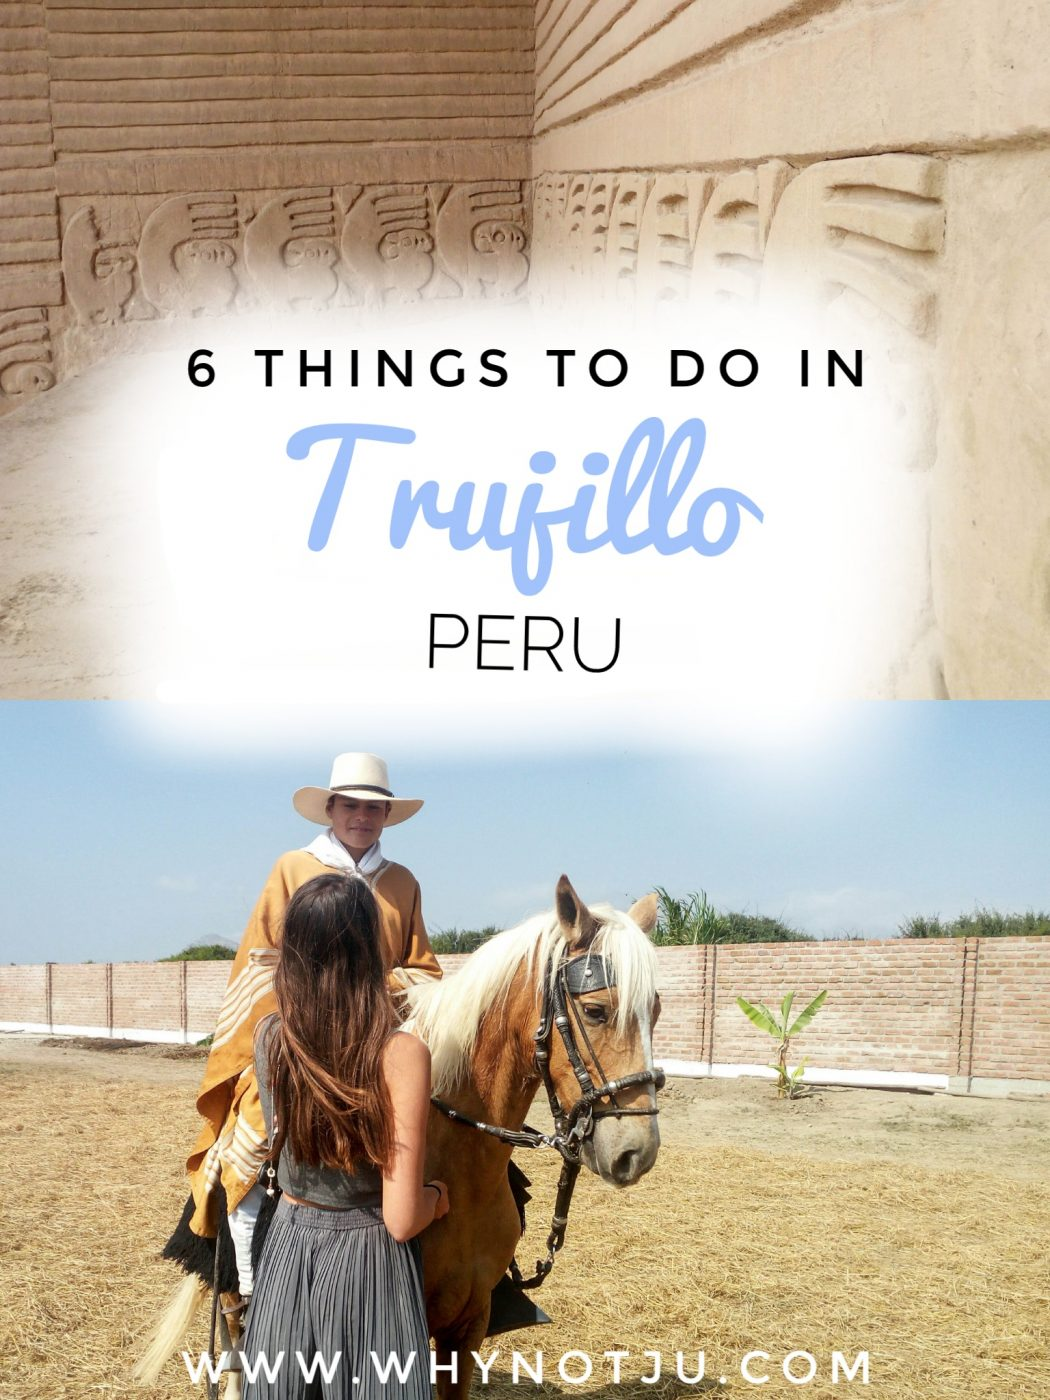 Trujillo in the north of Peru, has much to offer. Such as beach, surf and pre-inca ruins close by. Here are 6 things to do in Trujillo.